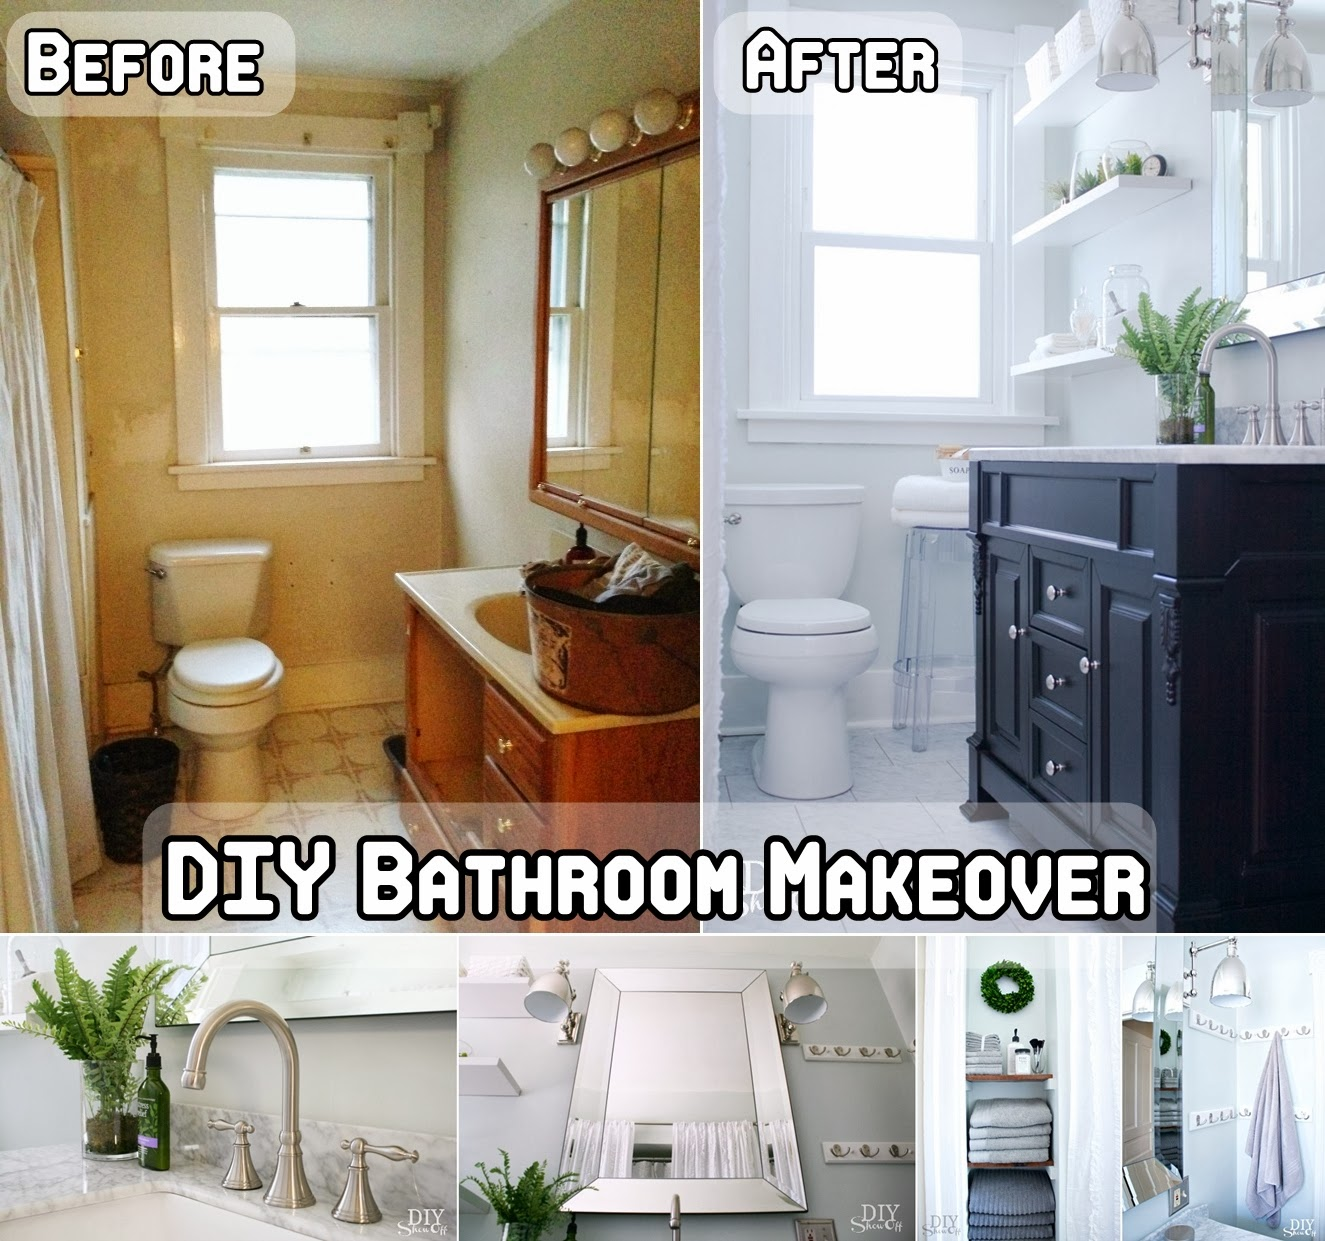 Diy bathroom makeover diy craft projects for D i y bathroom installations